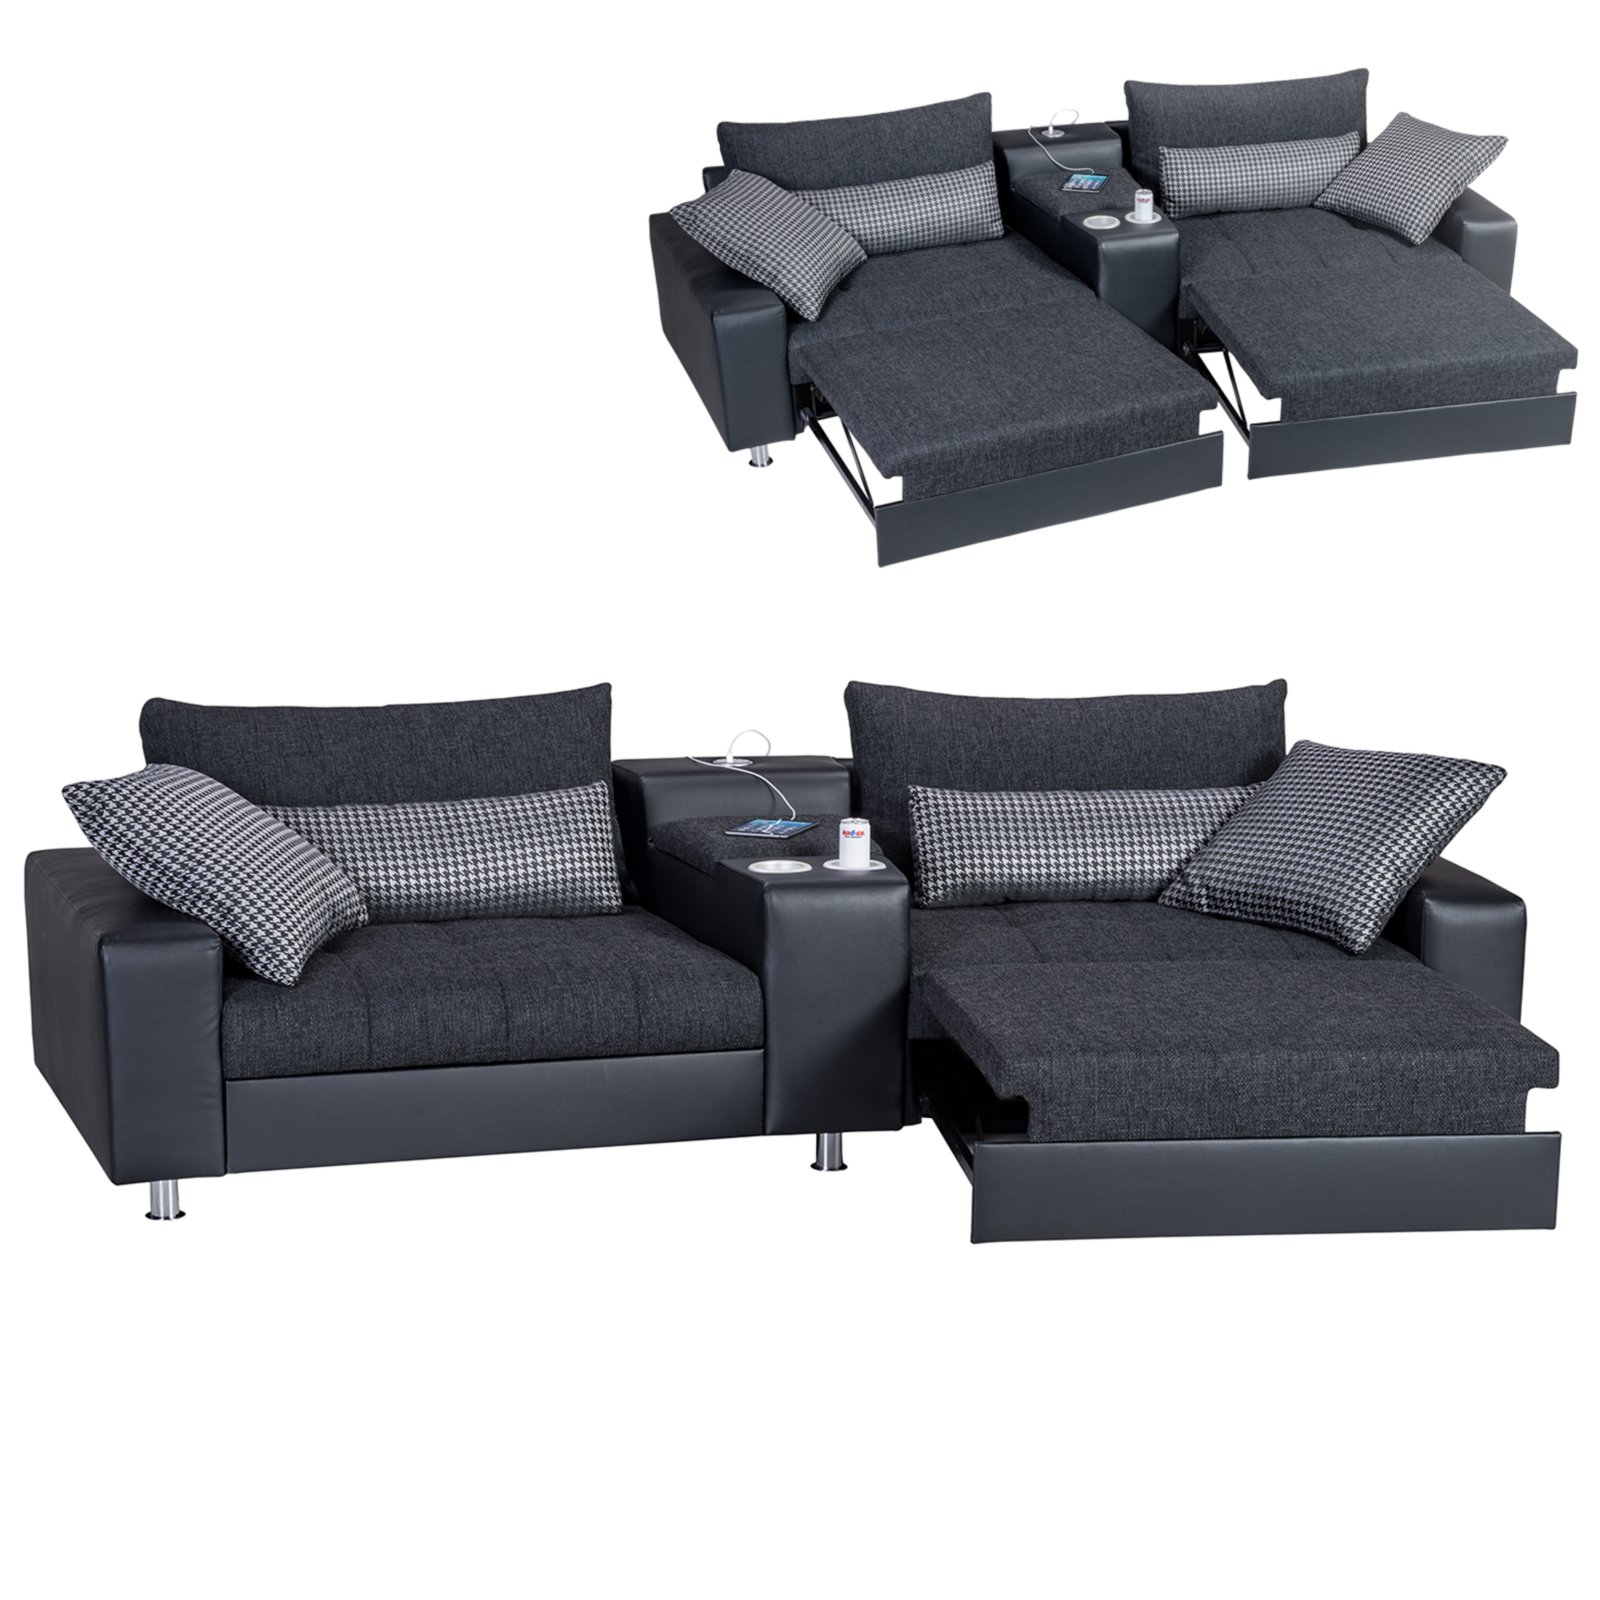 2 sitzer heimkino sofa schwarz mit funktionen. Black Bedroom Furniture Sets. Home Design Ideas